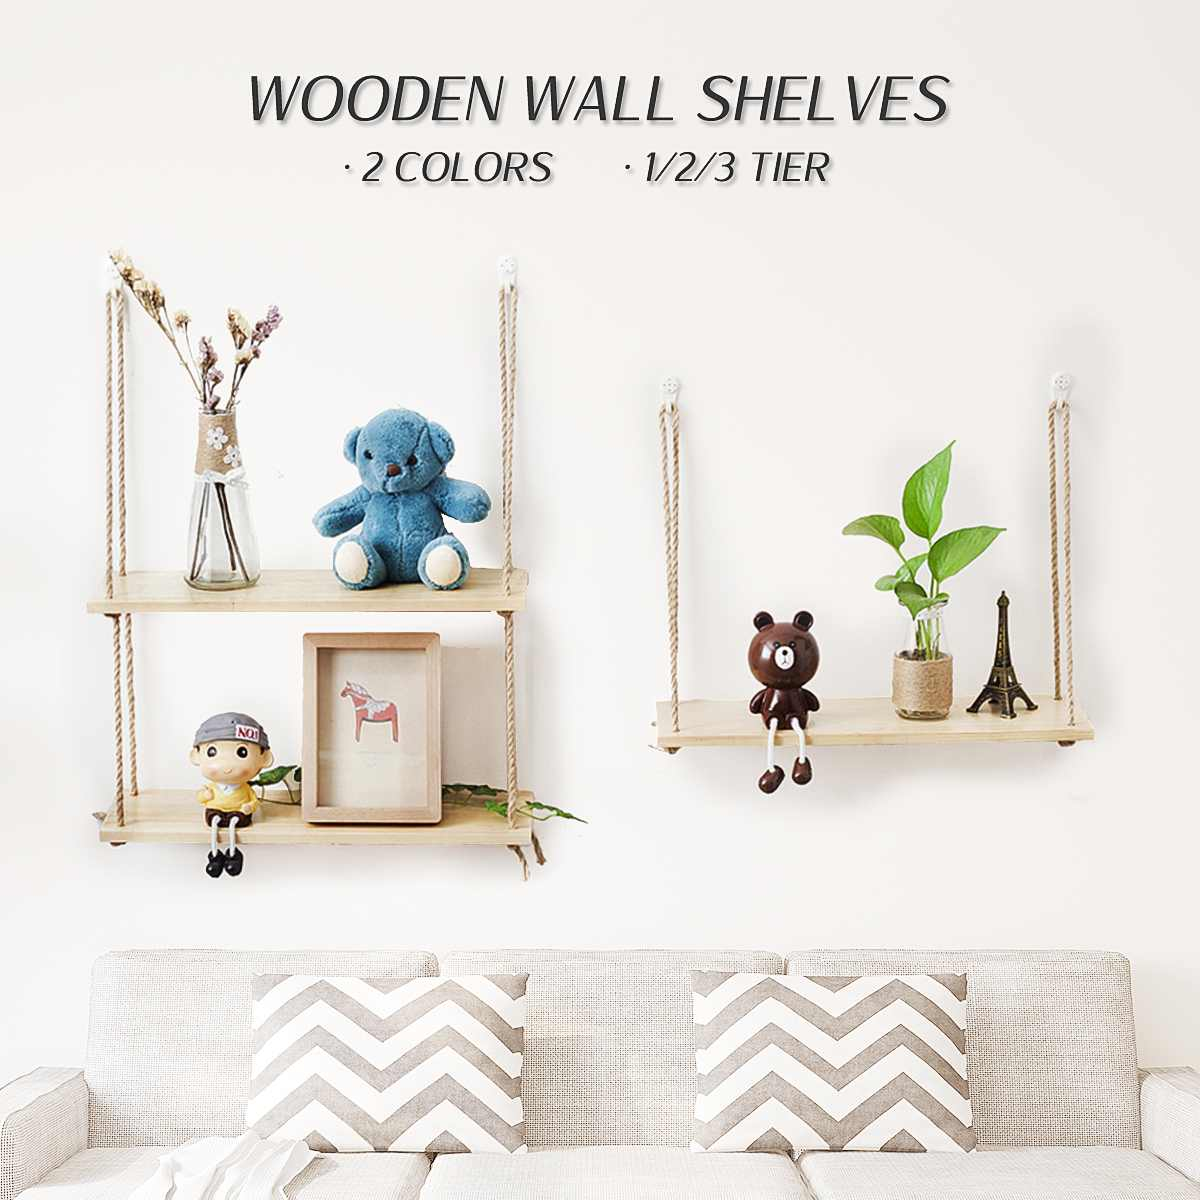 Wall Hanging Living Room Bookcases 1/2/3 Shelf Home Decoration Wood Wall Rope Floating Storage Shelf Crafts Display DecorWall Hanging Living Room Bookcases 1/2/3 Shelf Home Decoration Wood Wall Rope Floating Storage Shelf Crafts Display Decor